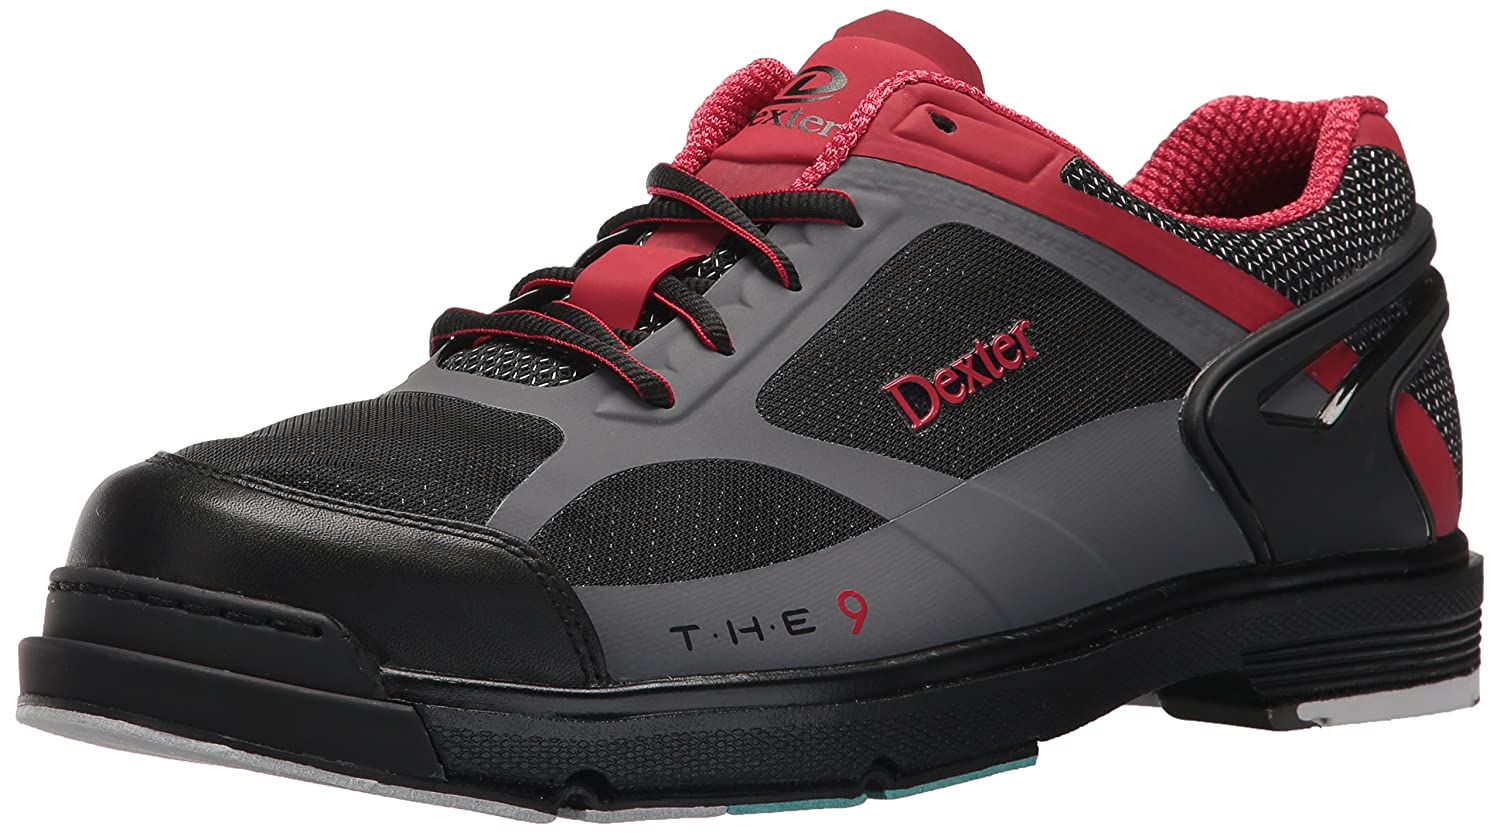 Dexter Mens SST THE 9HT Bowling Shoes WIDE- Black/Red/Grey Dexter Bowling Shoes DP0000192